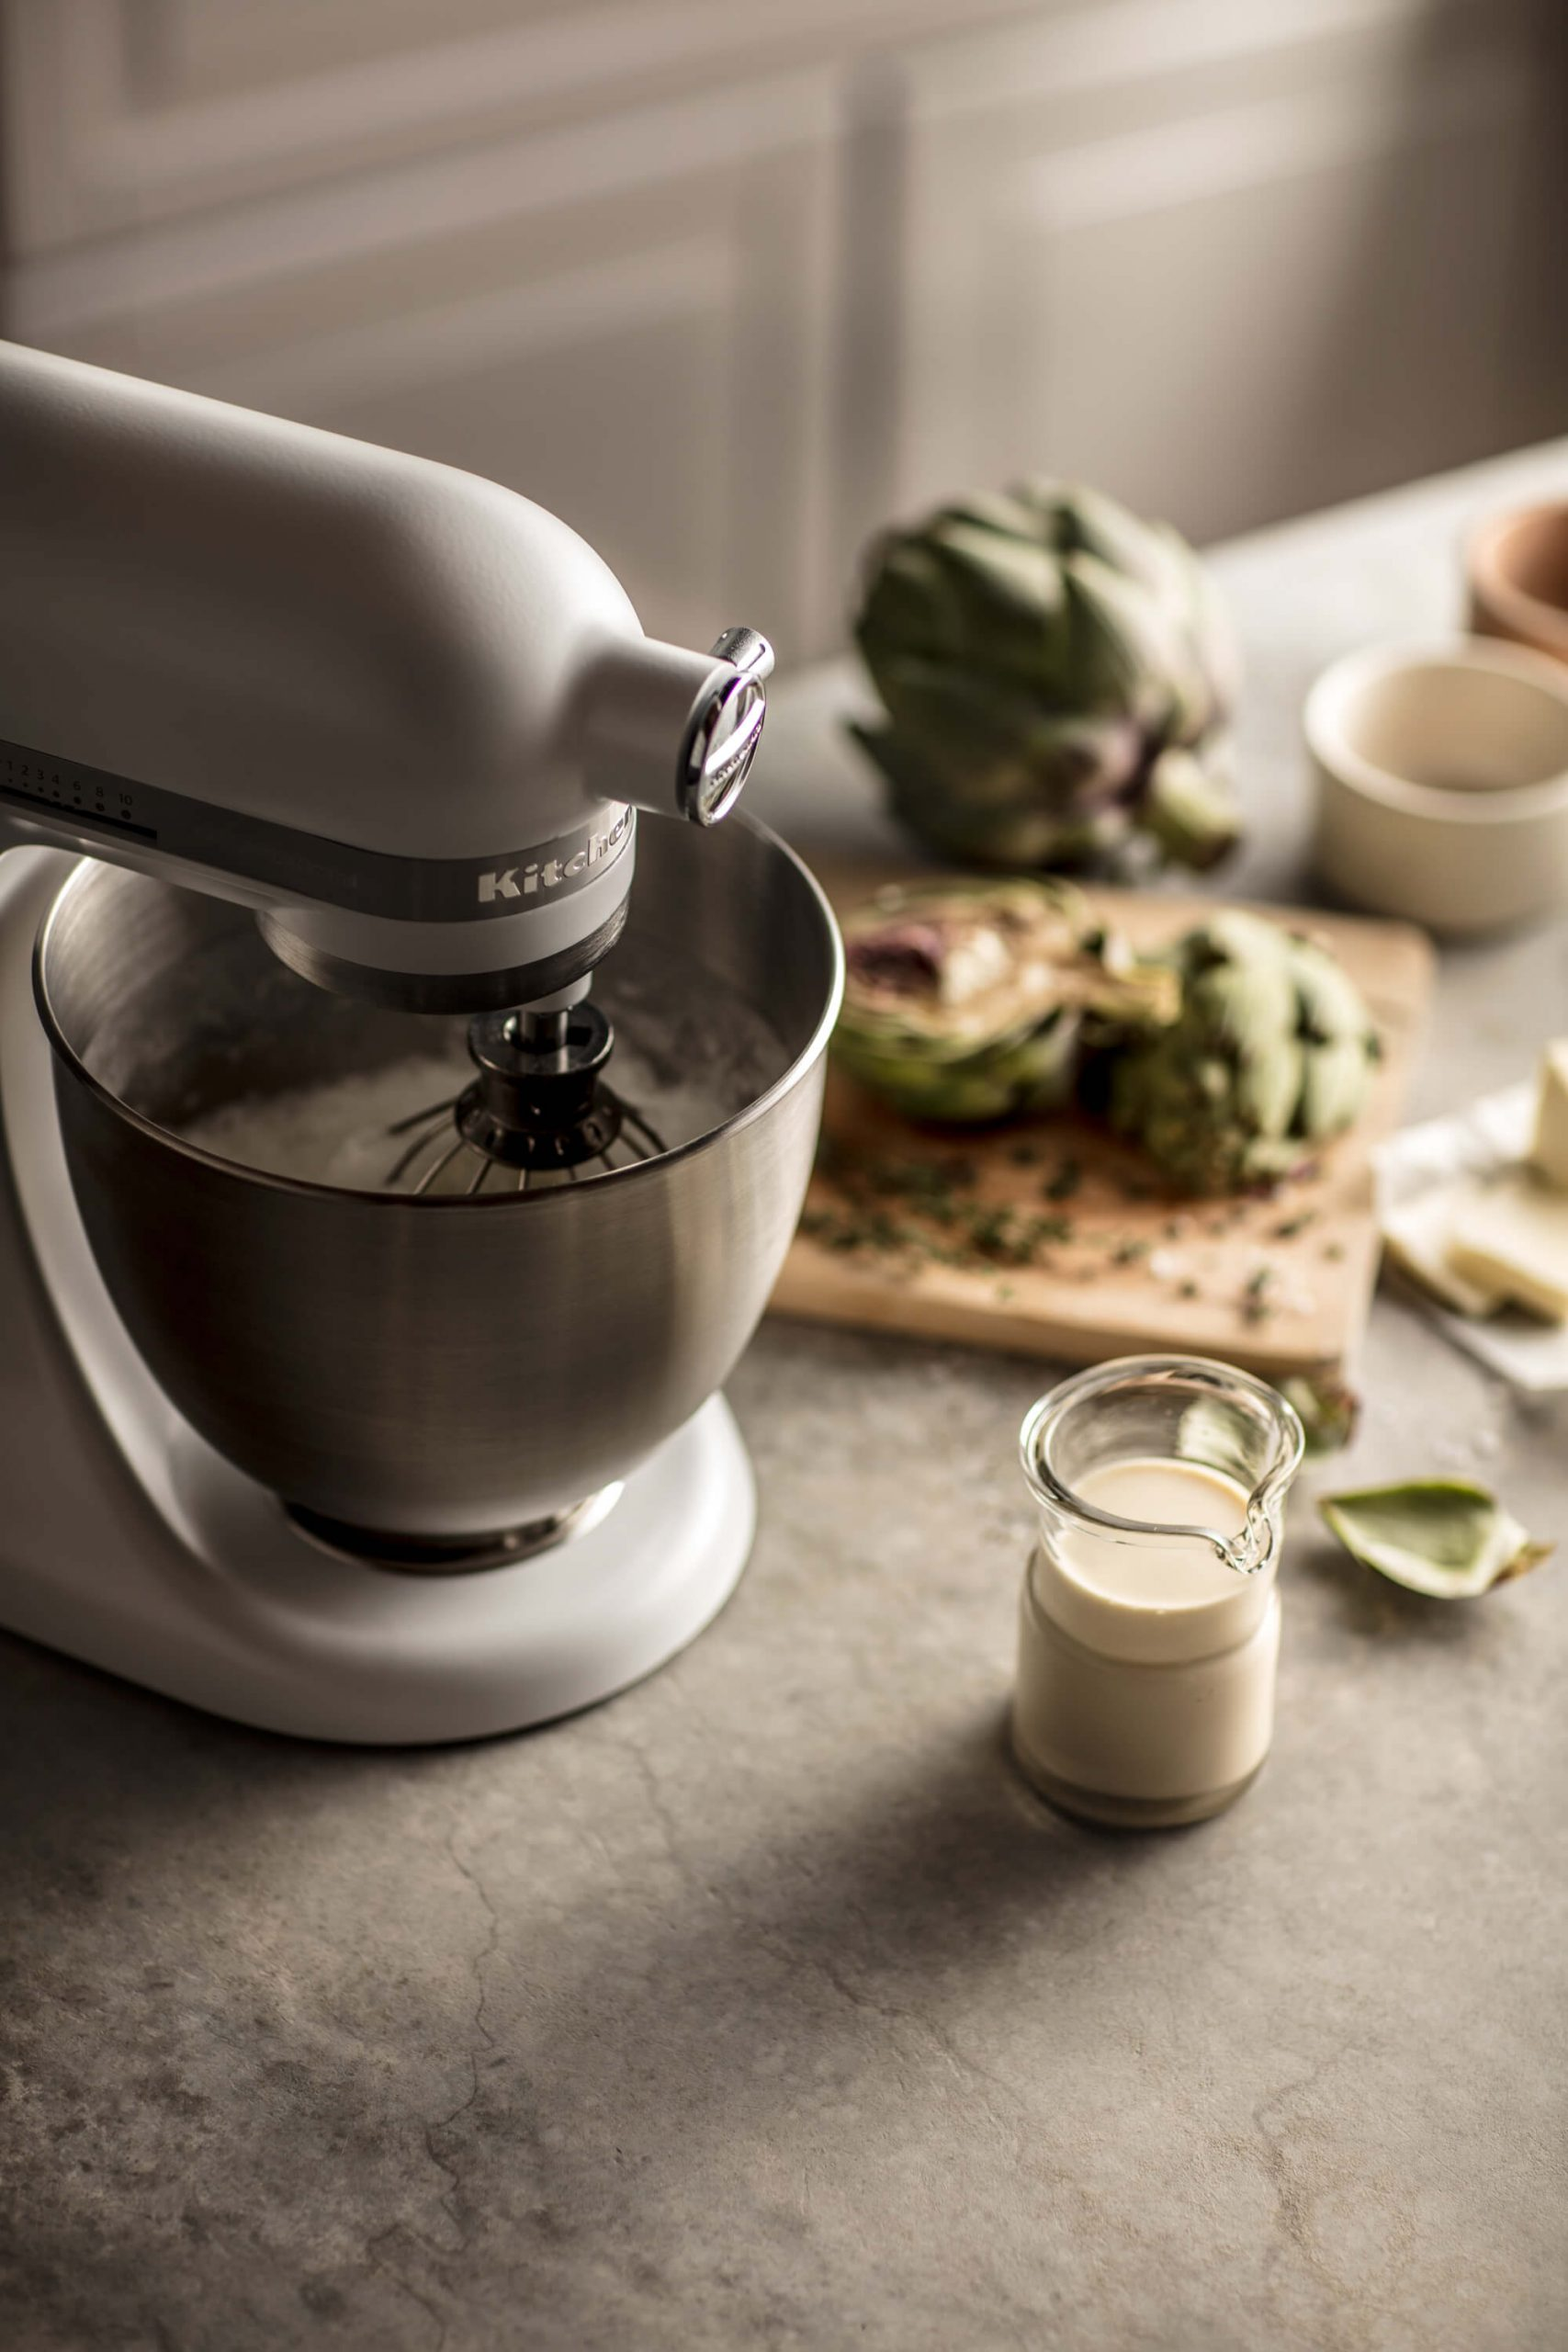 A KitchenAid® Stand Mixer mixing away on a kitchen countertop.